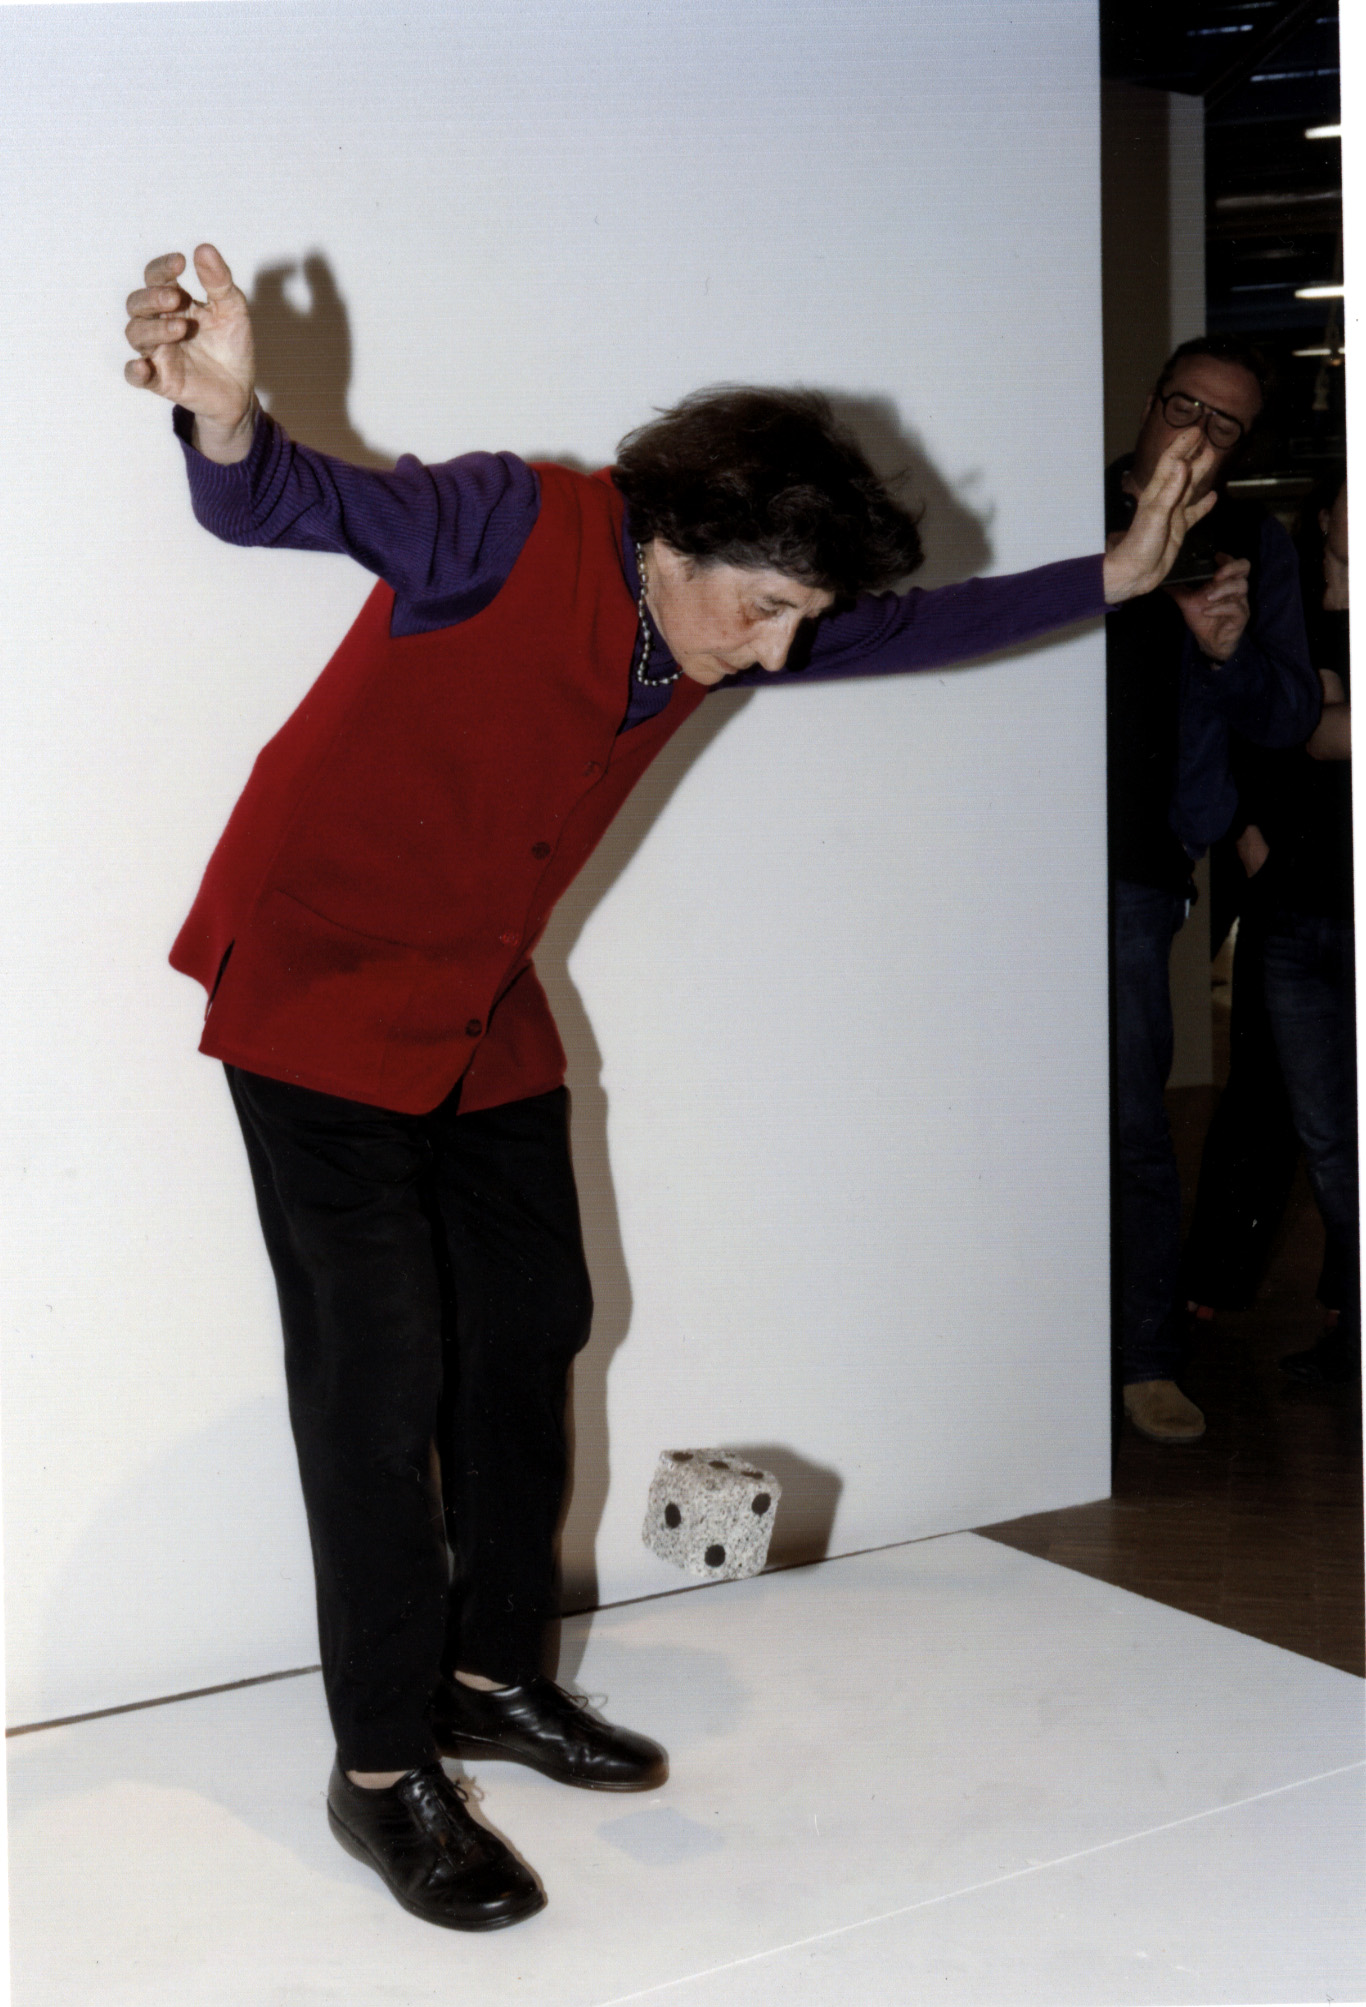 Esther Ferrer, Malarmé Revisé o Malarmado Revisado (2015). Photo courtesy of Hervé Veronese.